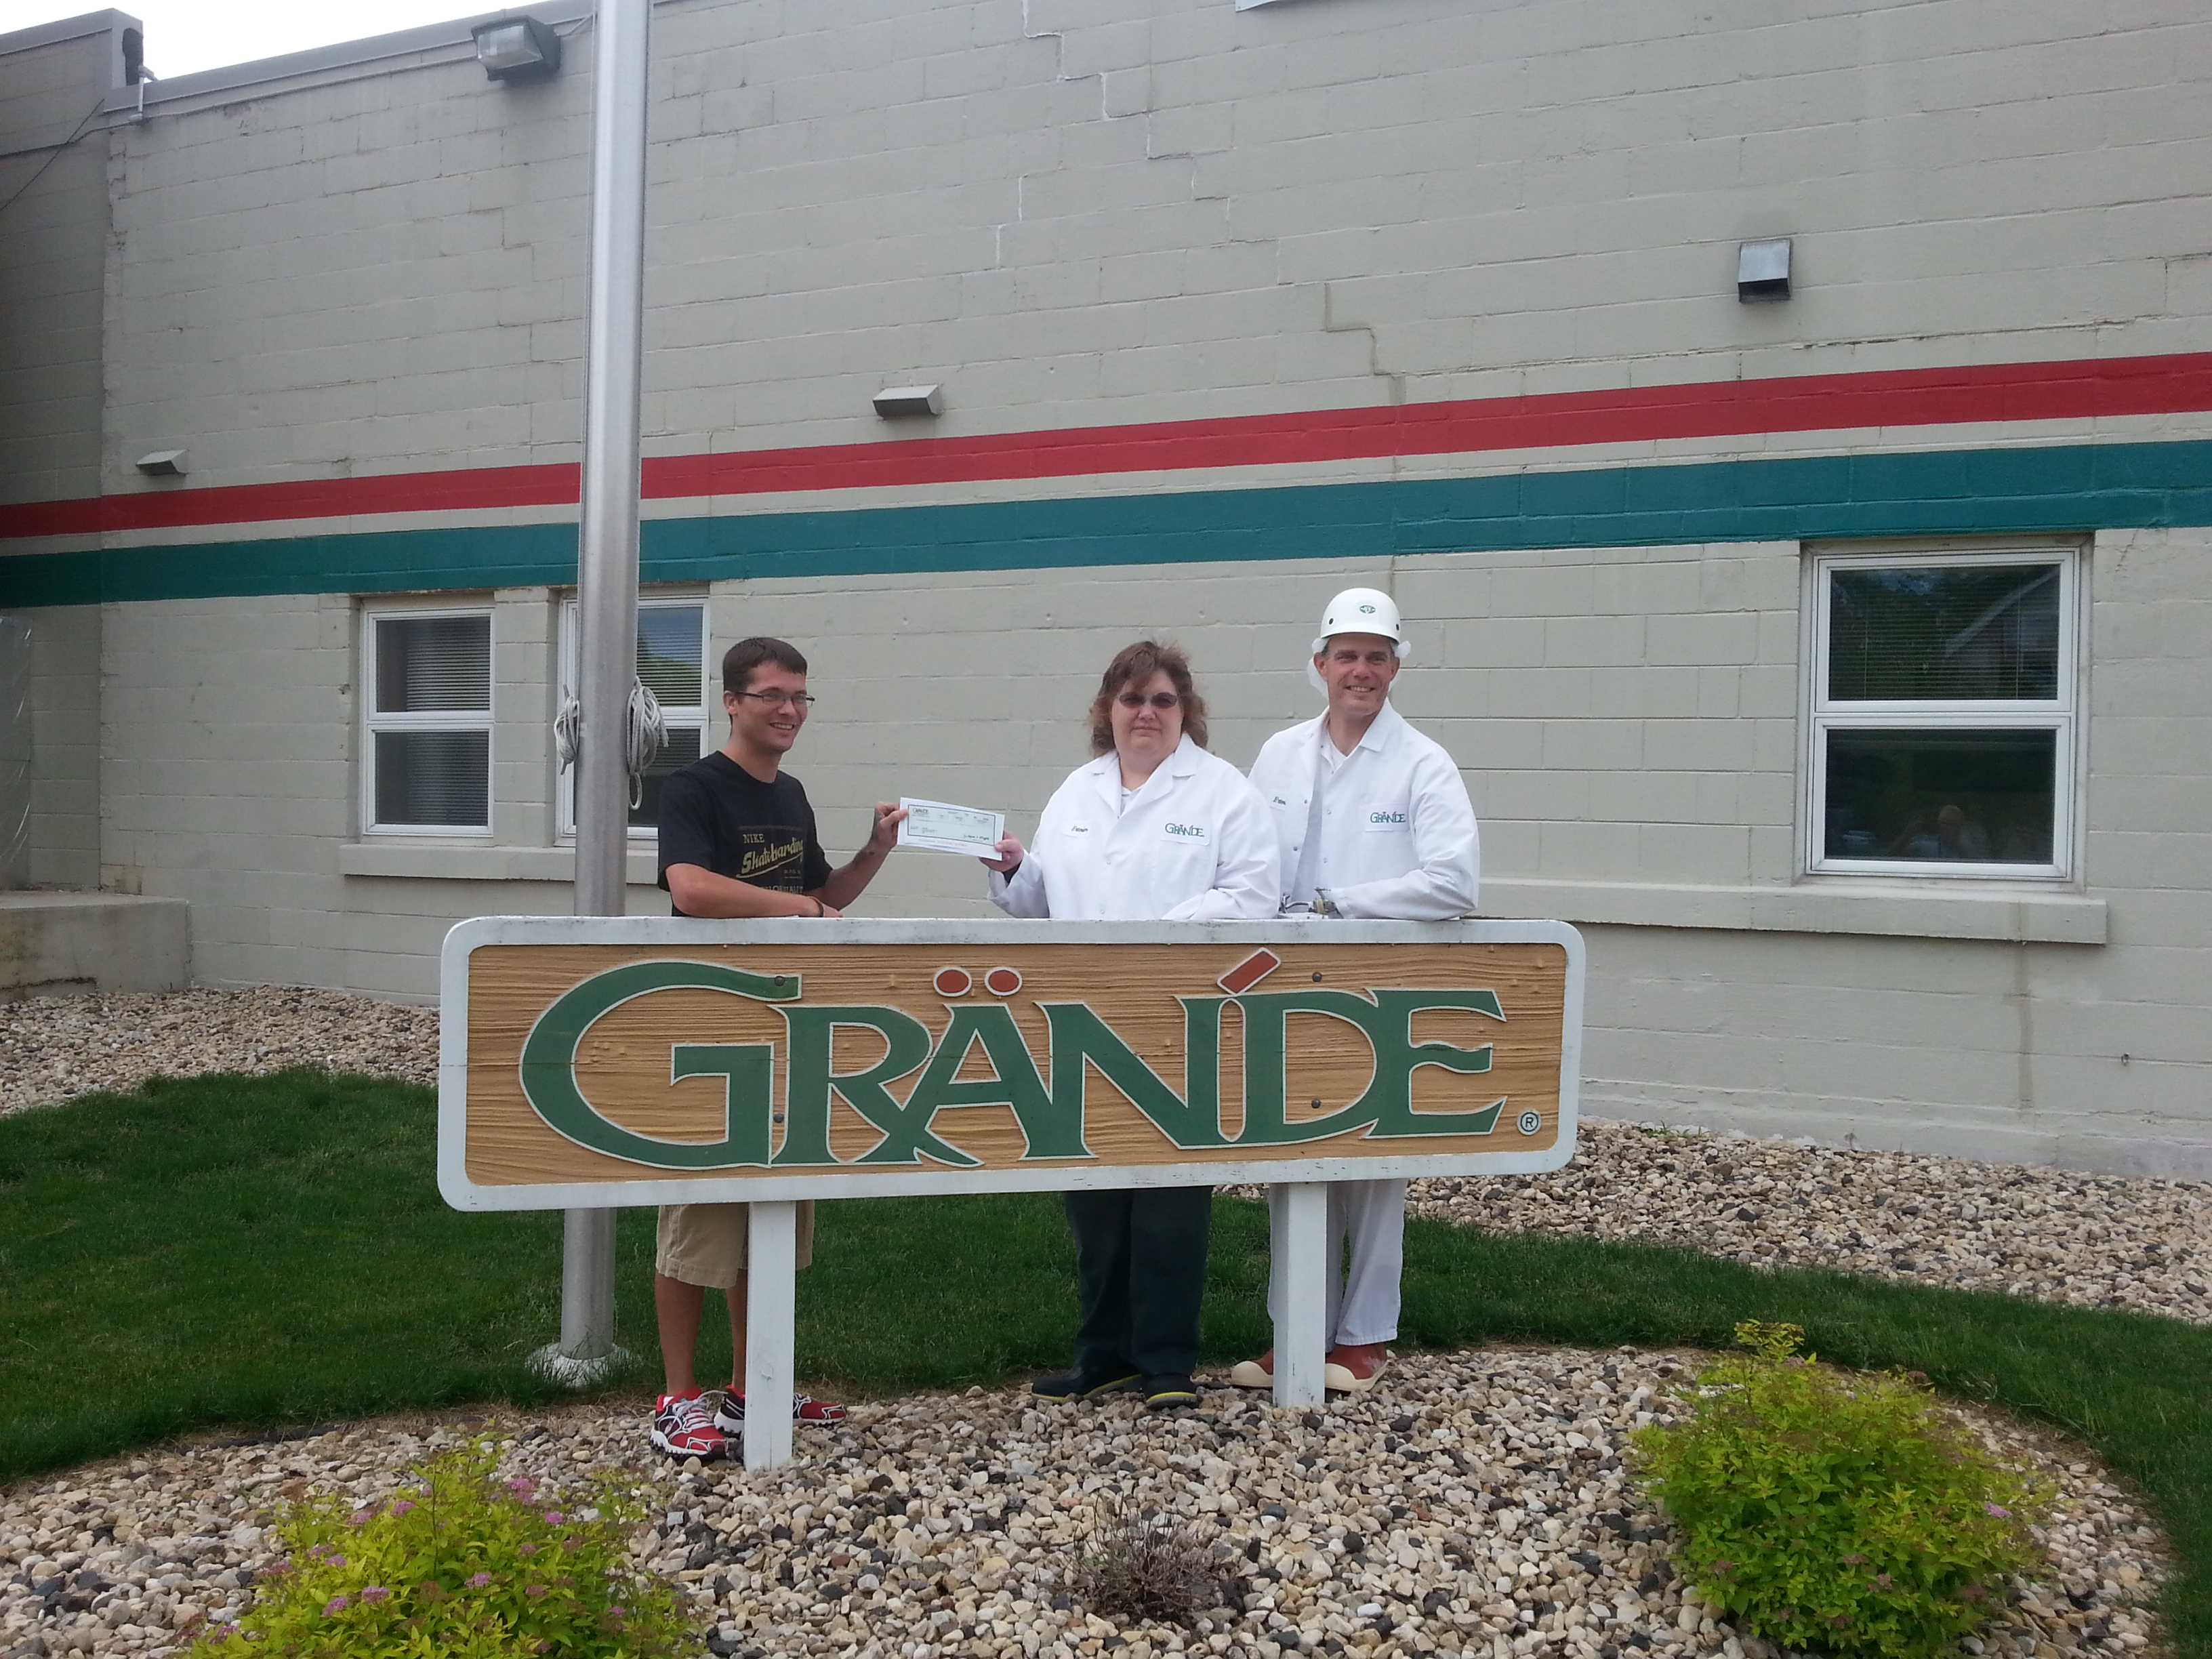 A SKATE big THANK YOU to Grande Cheese Company in Wyocena!!